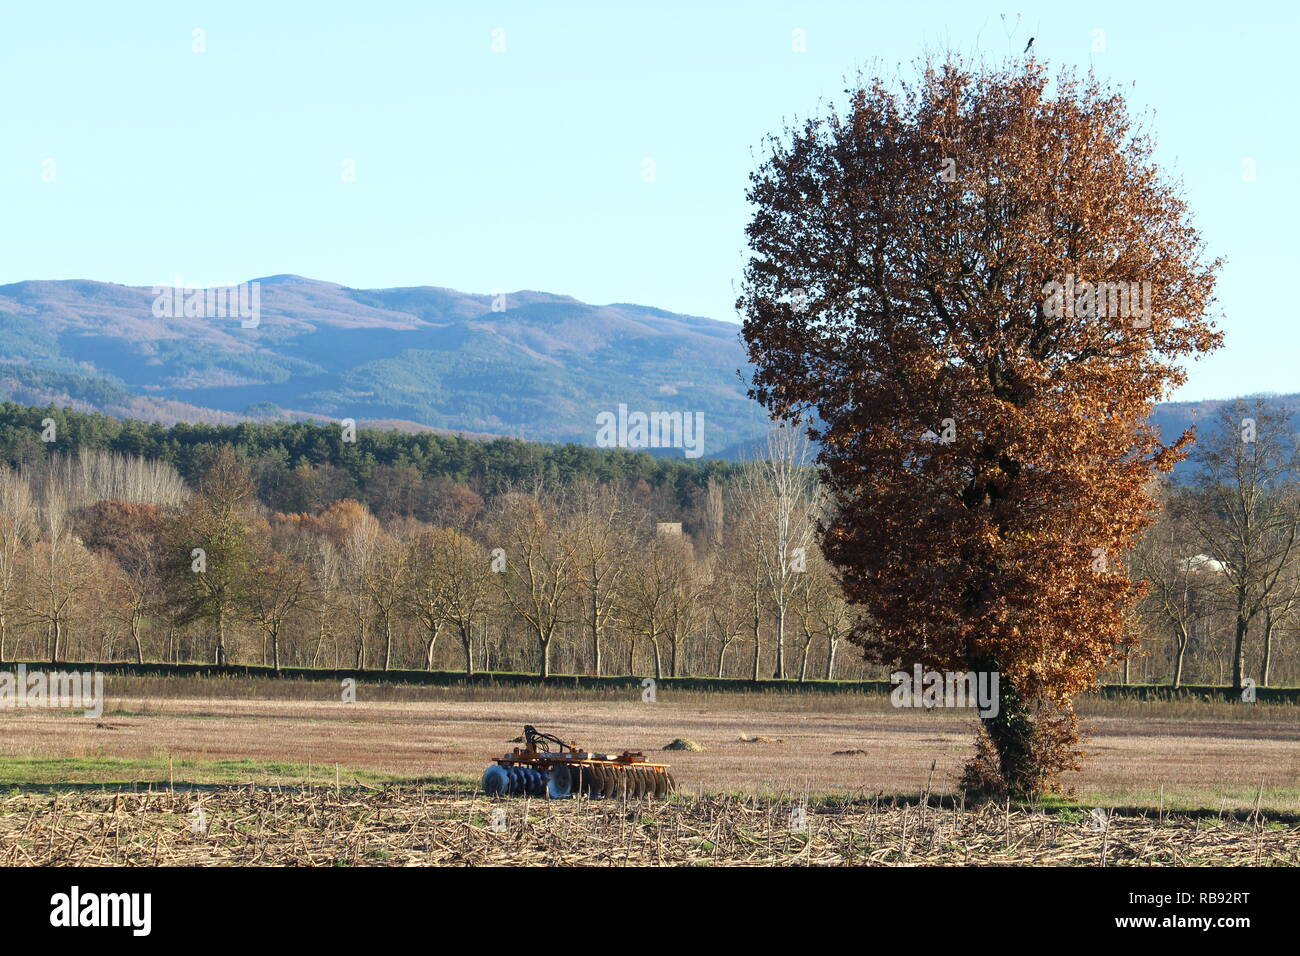 plow in the field, background nature - Stock Image